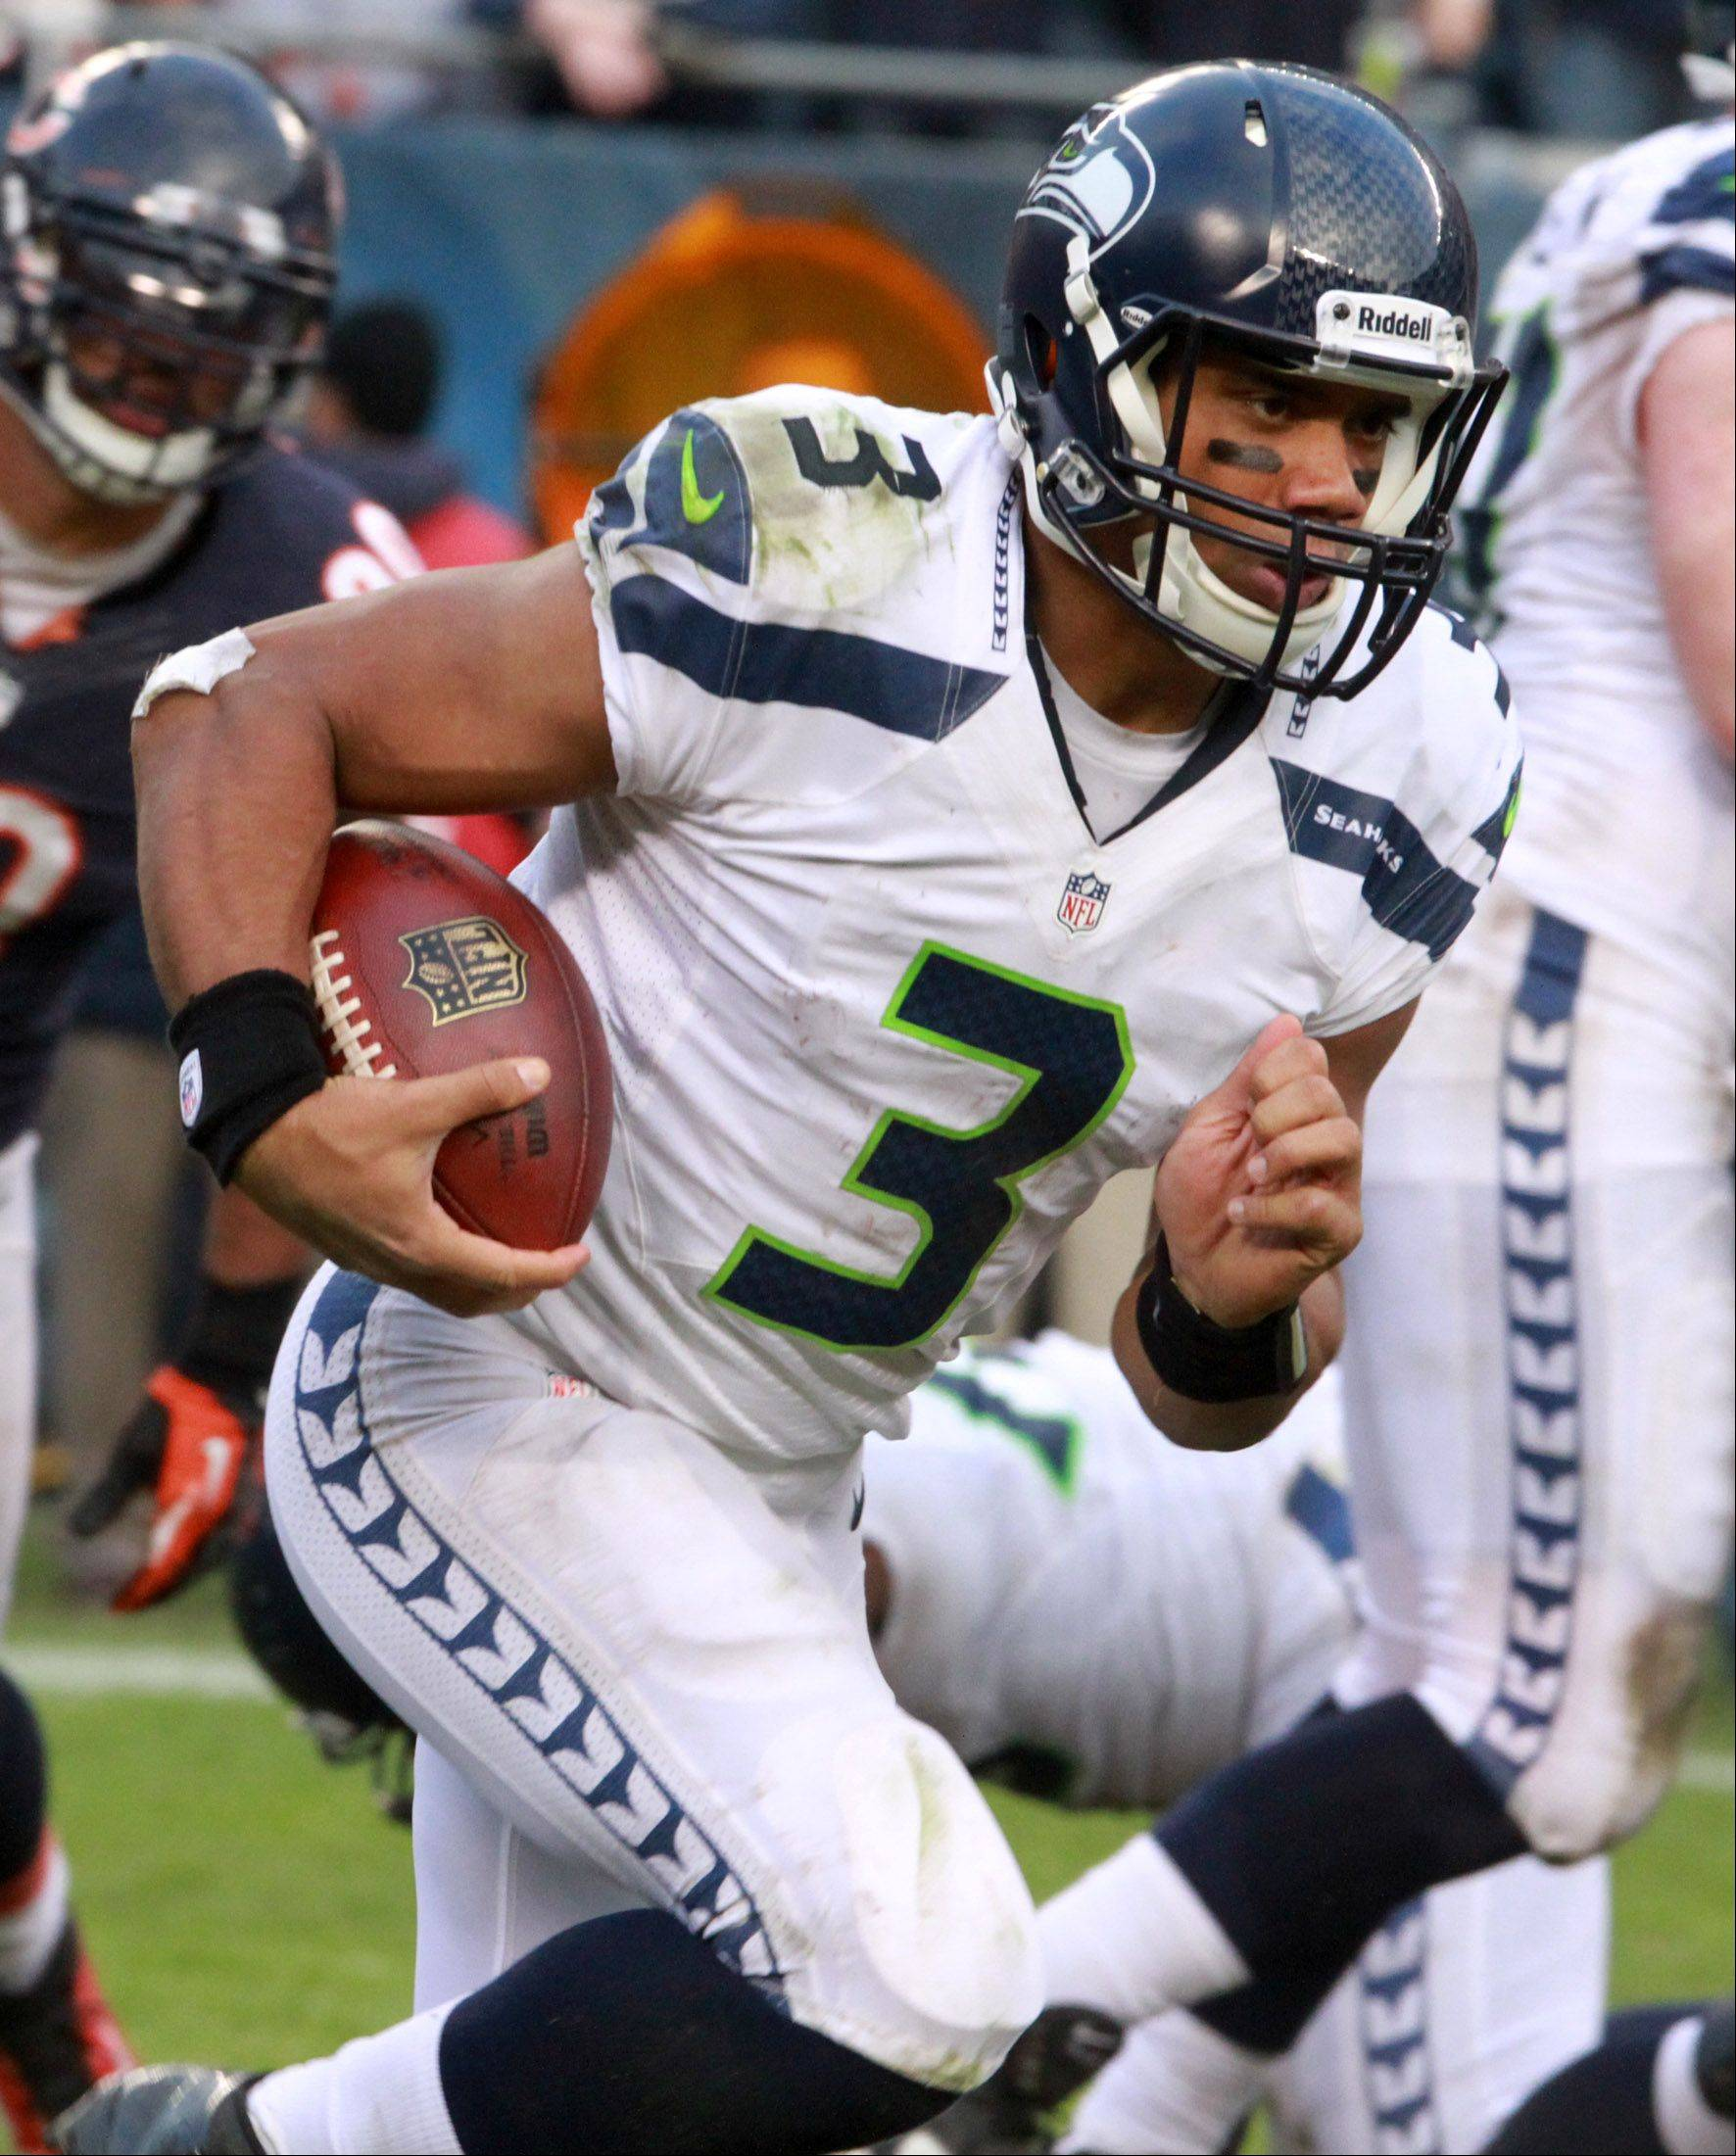 Seattle Seahawks quarterback Russell Wilson runs against the Bears at Soldier Field on Sunday.